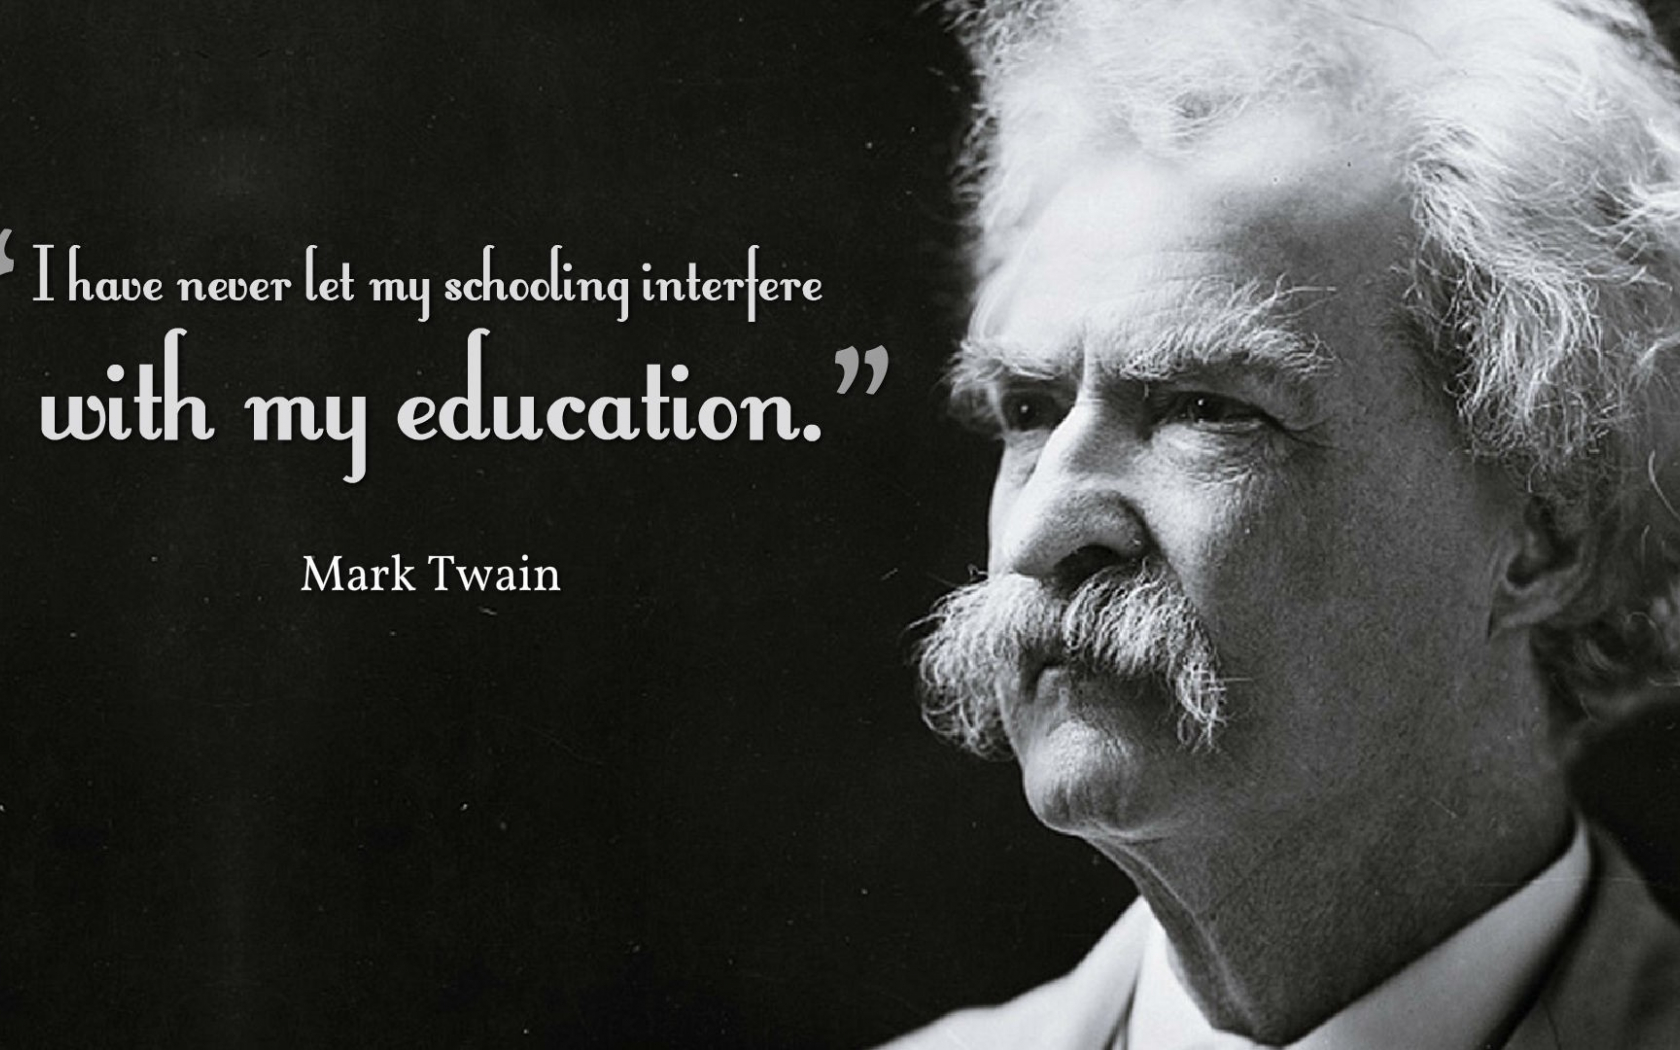 Free Download Mark Twain Education Schooling Quotes Wallpaper 10768 Baltana 1920x1080 For Your Desktop Mobile Tablet Explore 41 Mark Twain Wallpapers Shania Twain Wallpapers Question Mark Wallpaper Mark Ingram Wallpapers